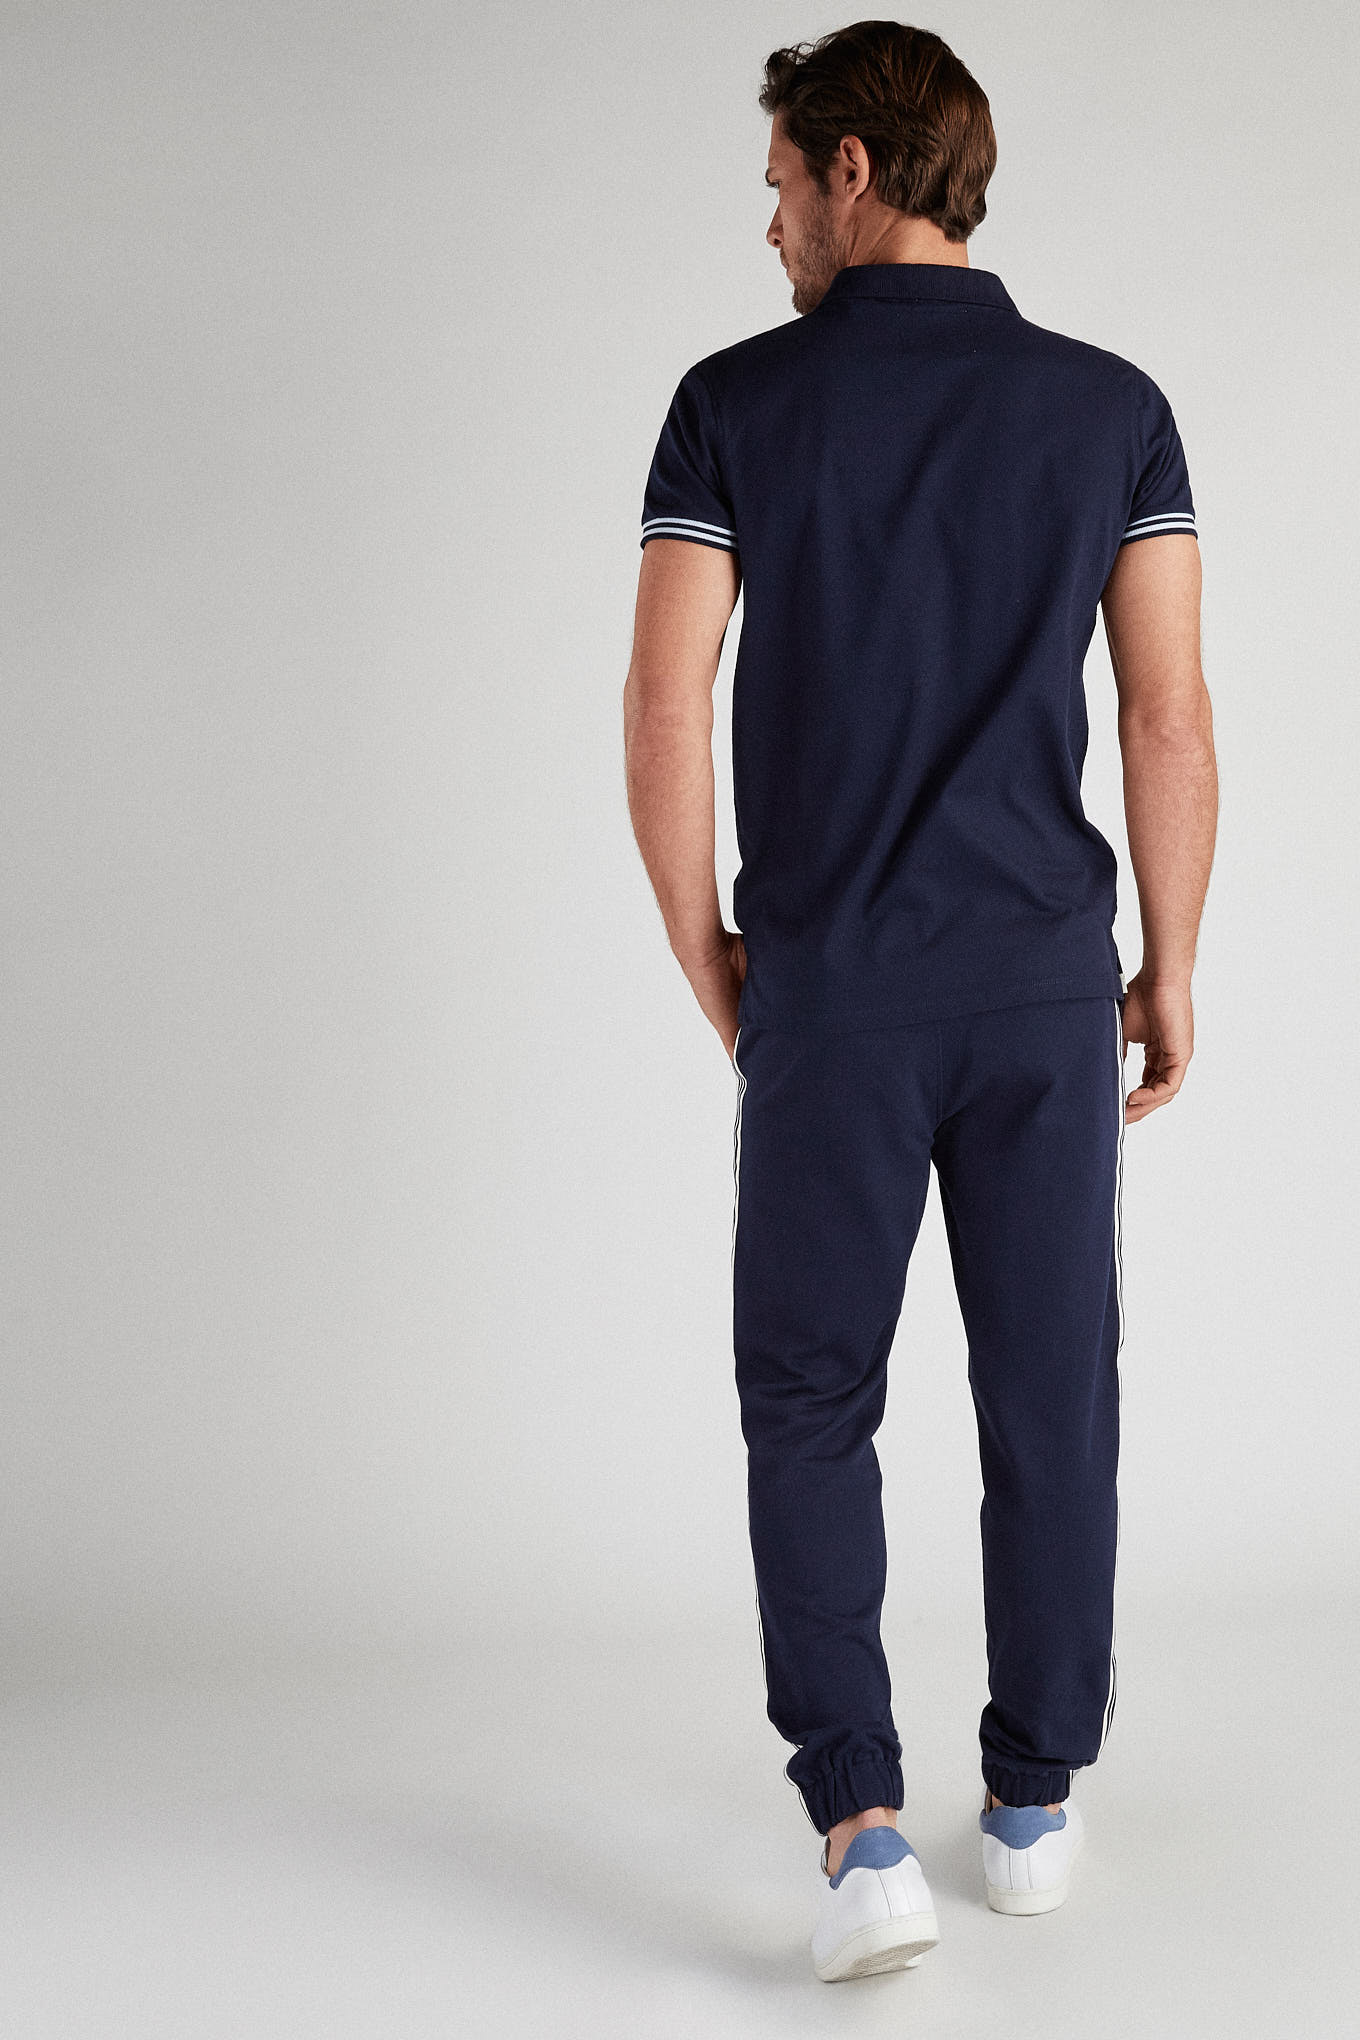 Sportswear Trousers Dark Blue Sport Man